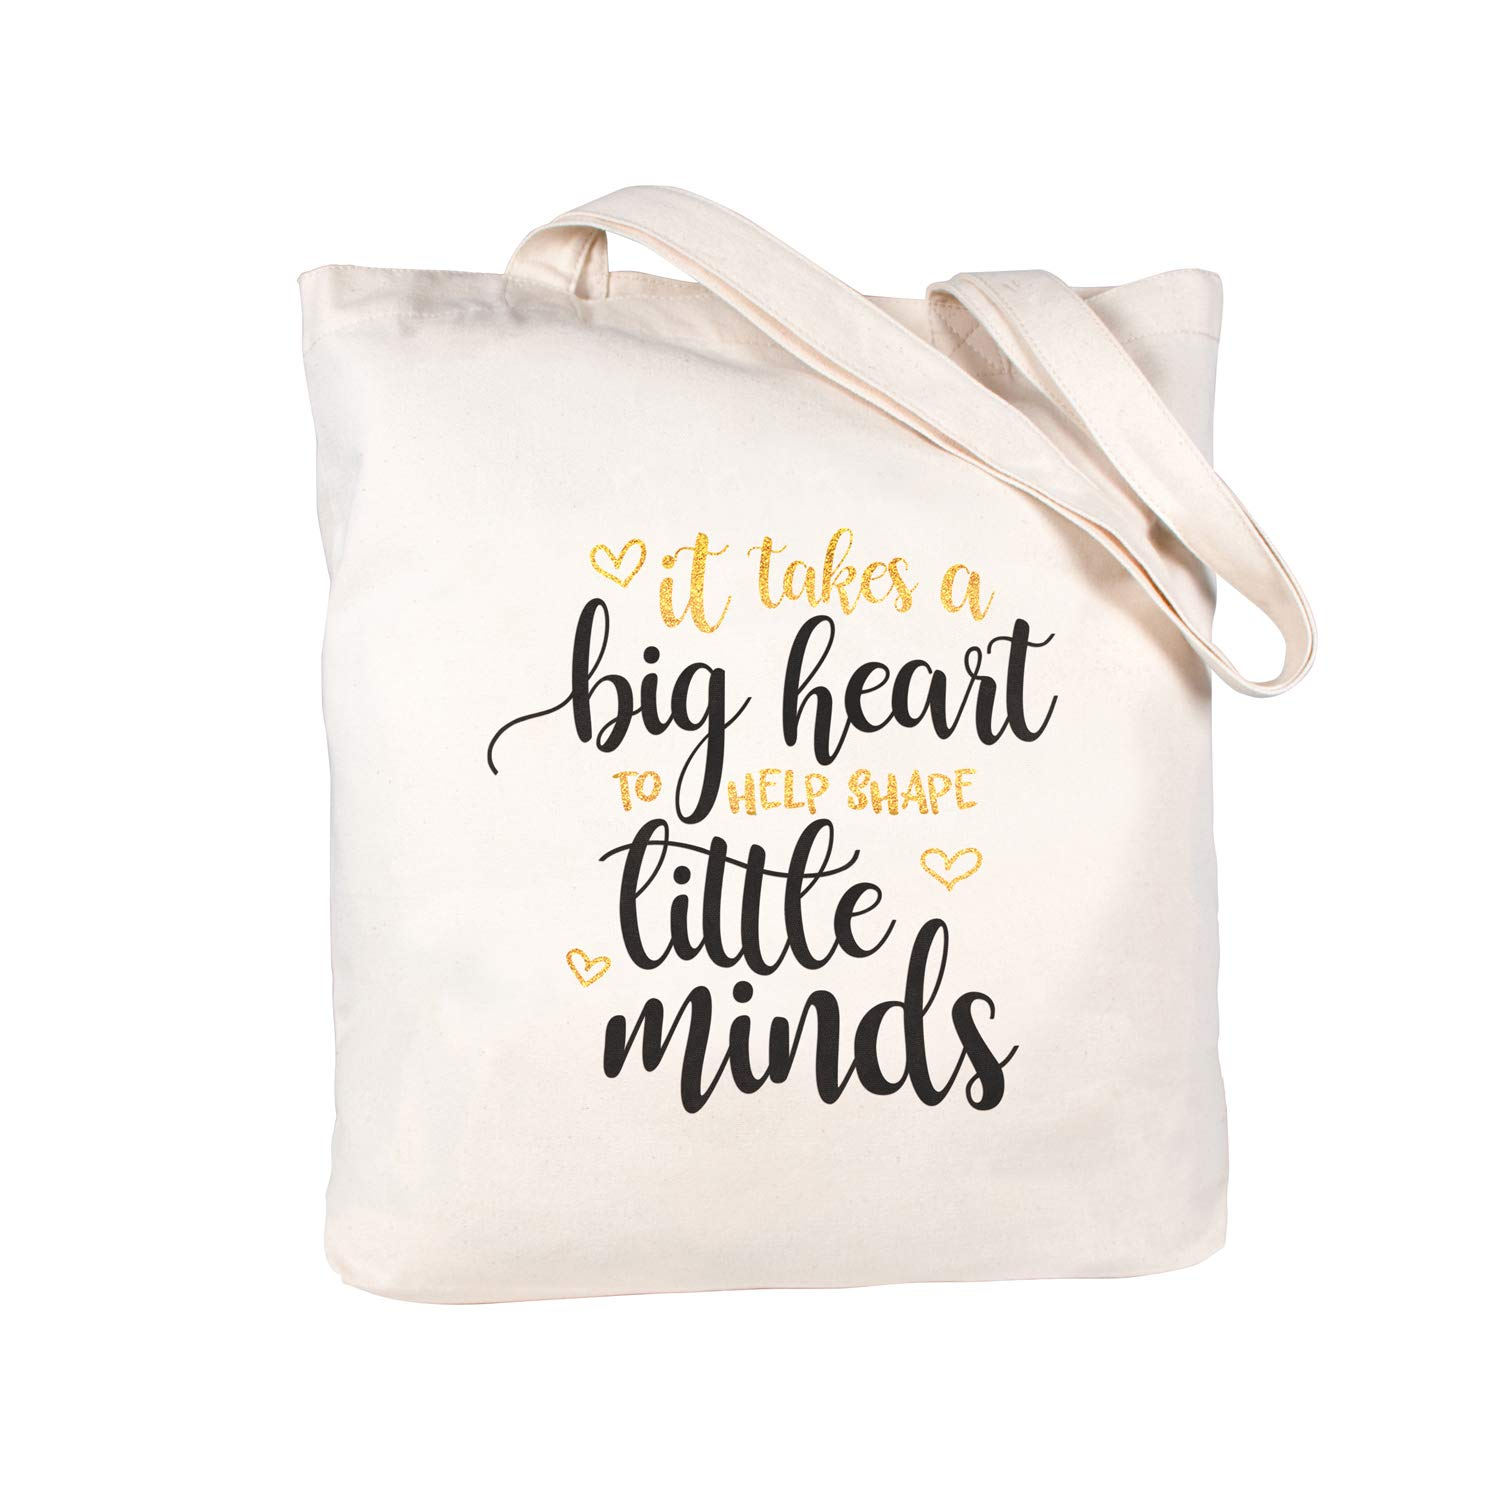 small market bag library tote Quilted tote bag teacher gift bible tote